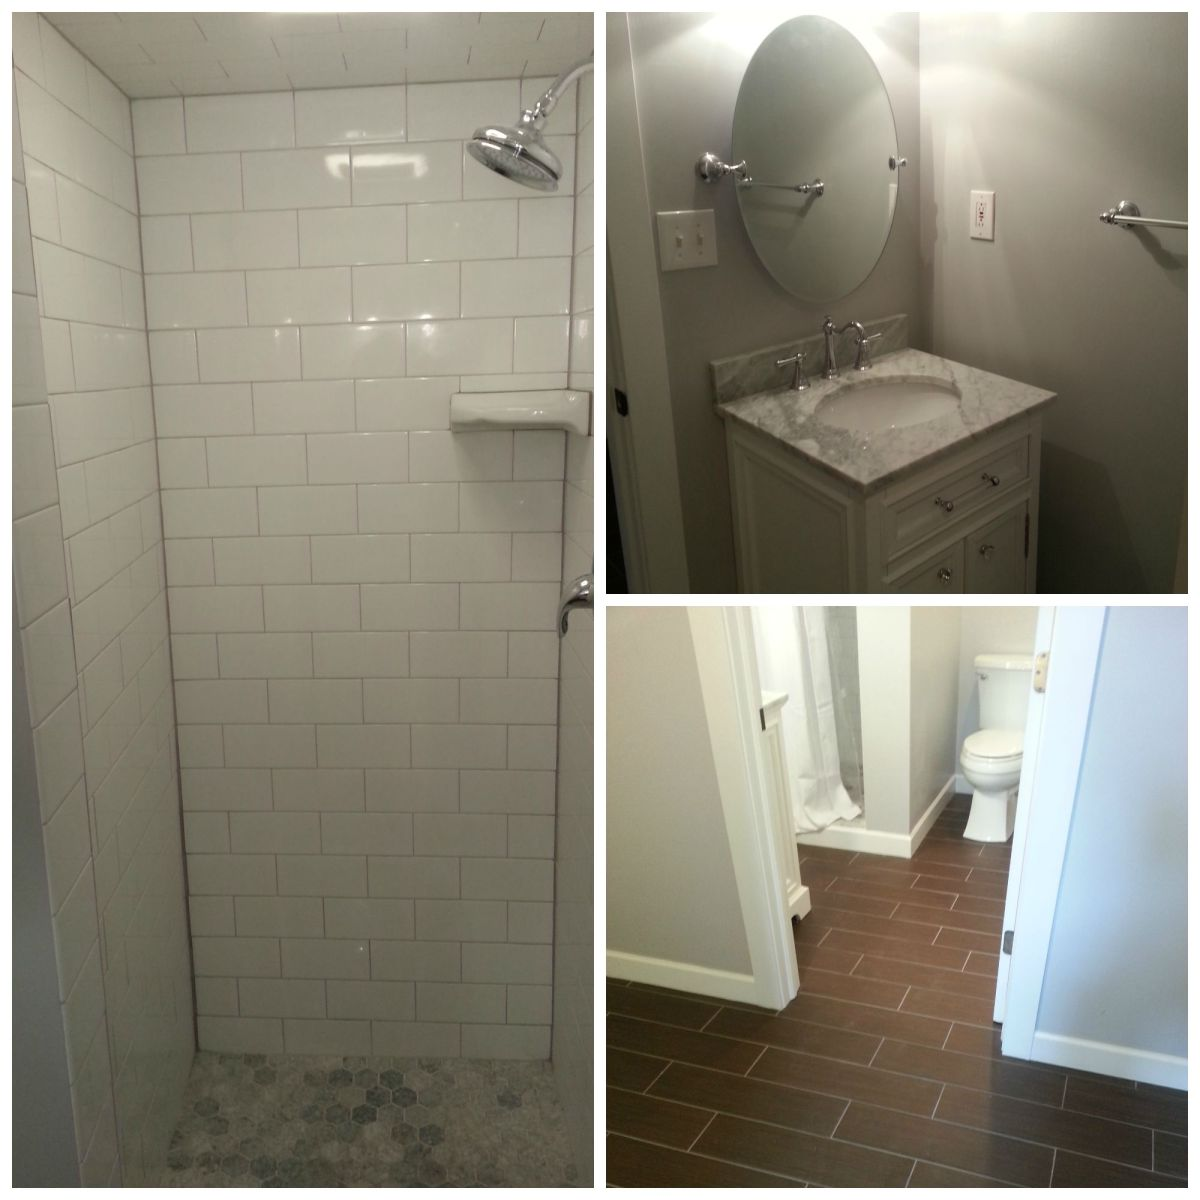 Bathroom Reno: Part I